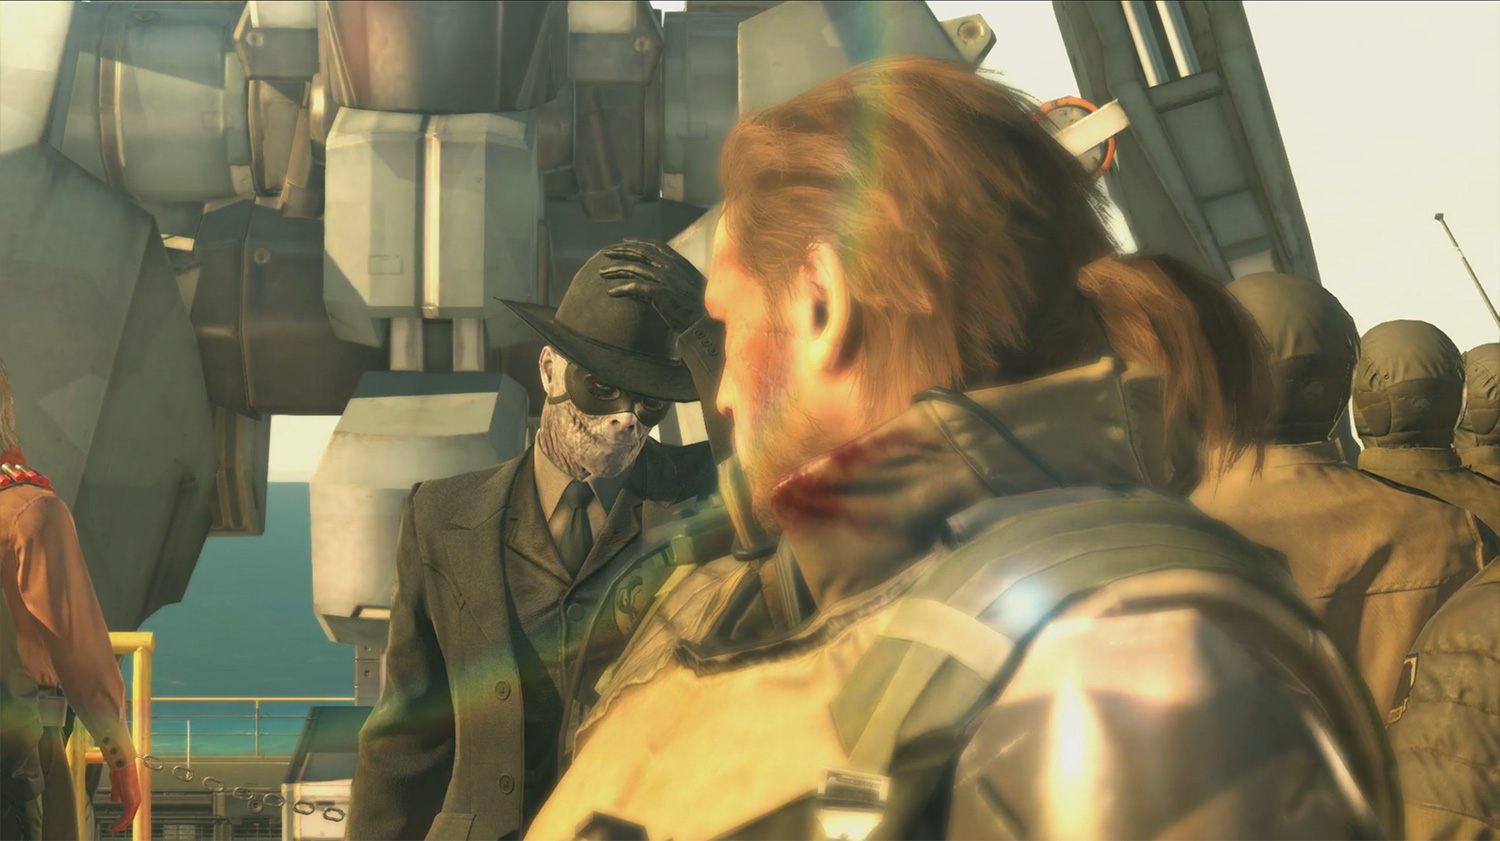 Metal-Gear-Solid-V-The-Phantom-Pain-Skull-Face-Phantom